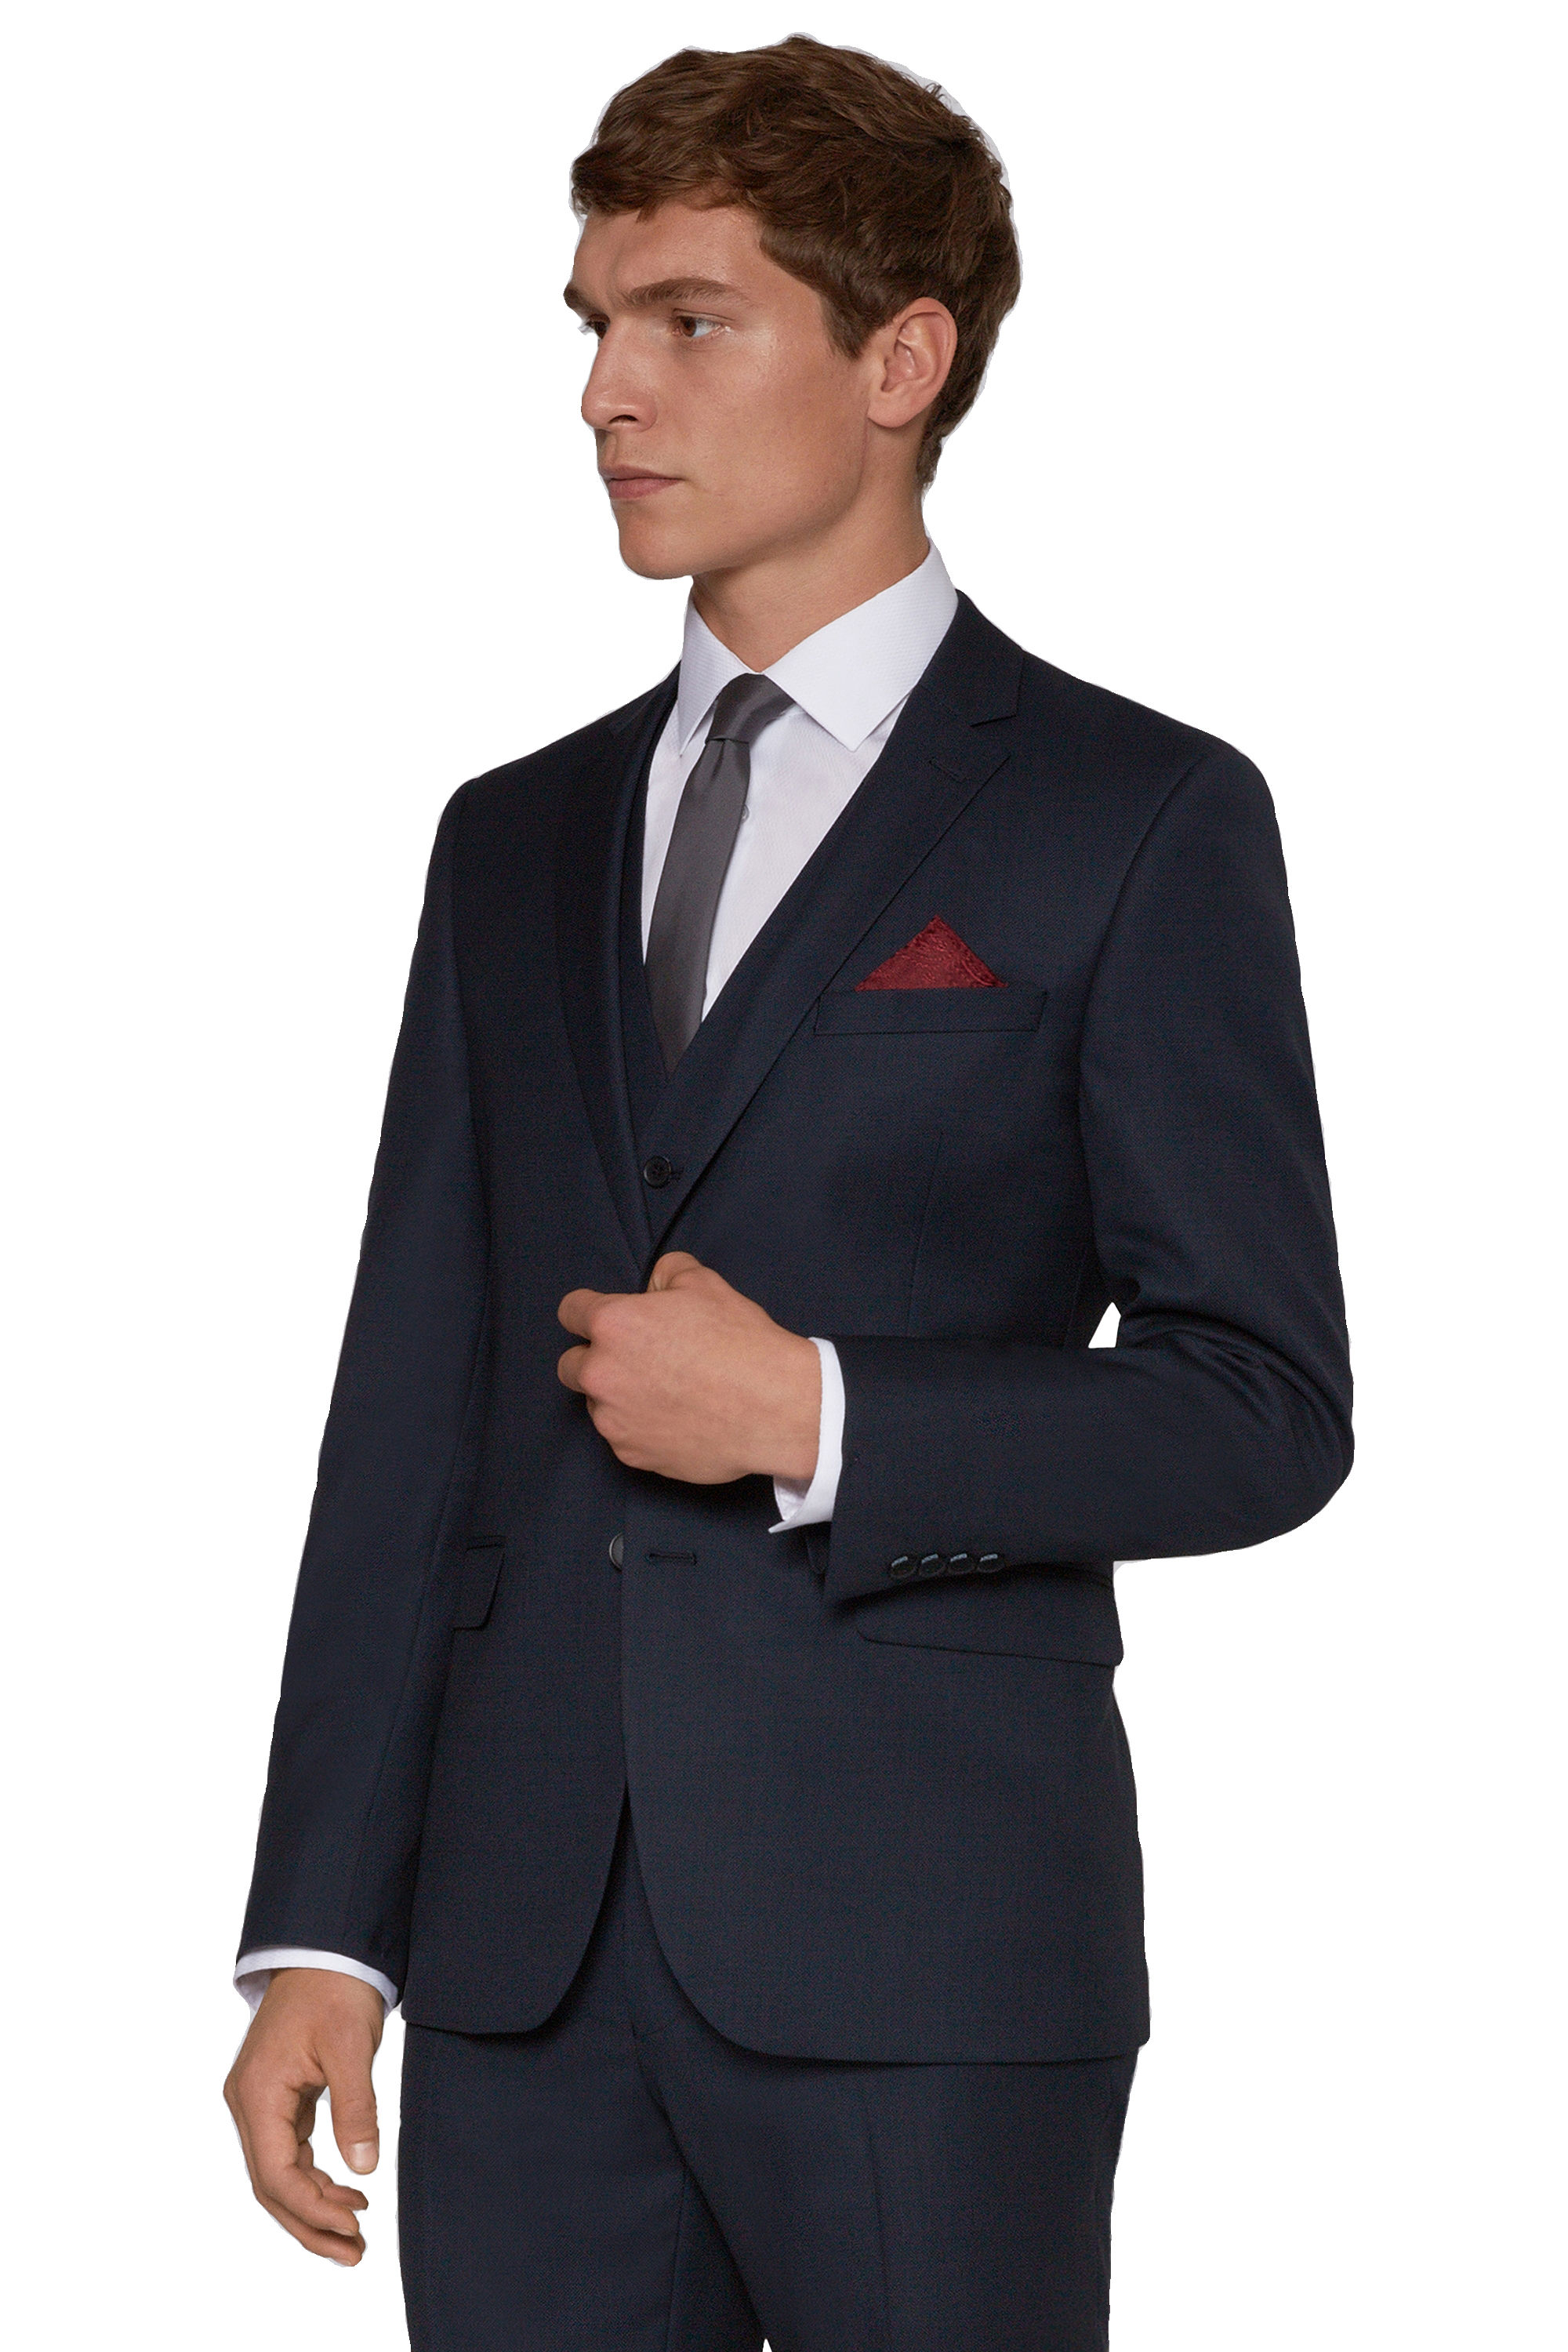 DKNY Mens Navy Blue Suit Jacket Slim Fit Single Breasted Two ...